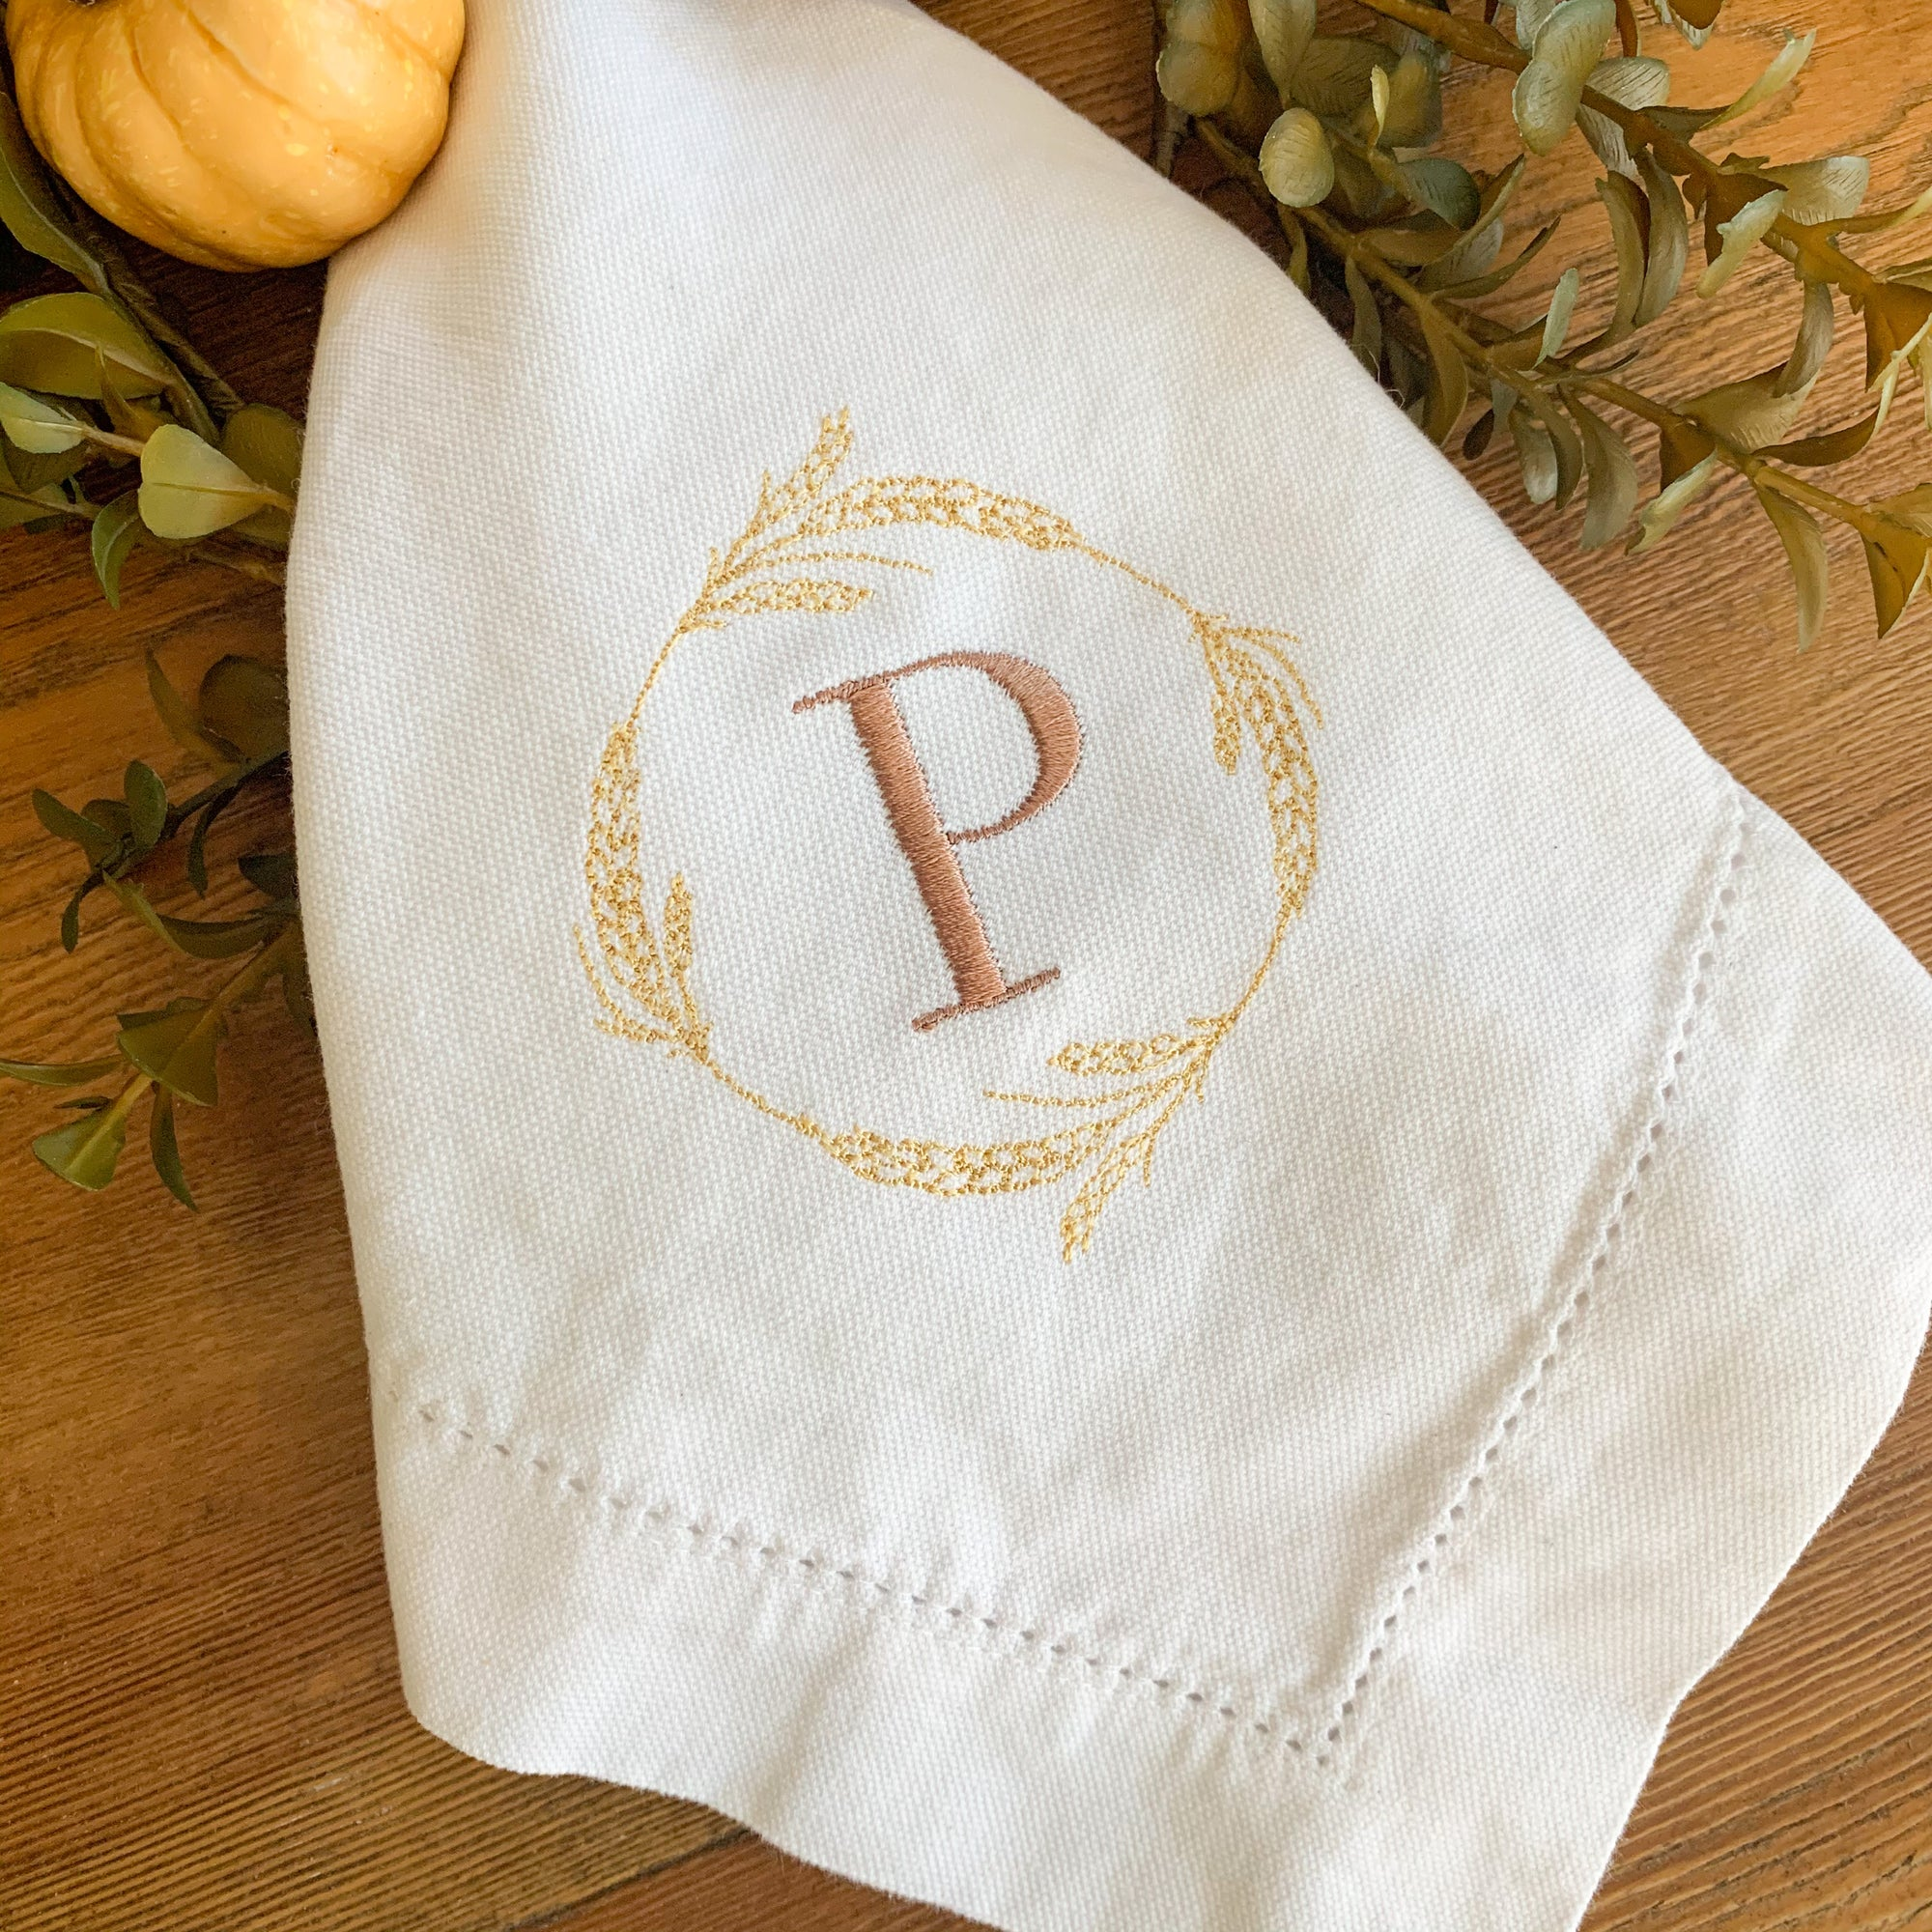 Wheat Wreath Embroidered Dinner Napkins